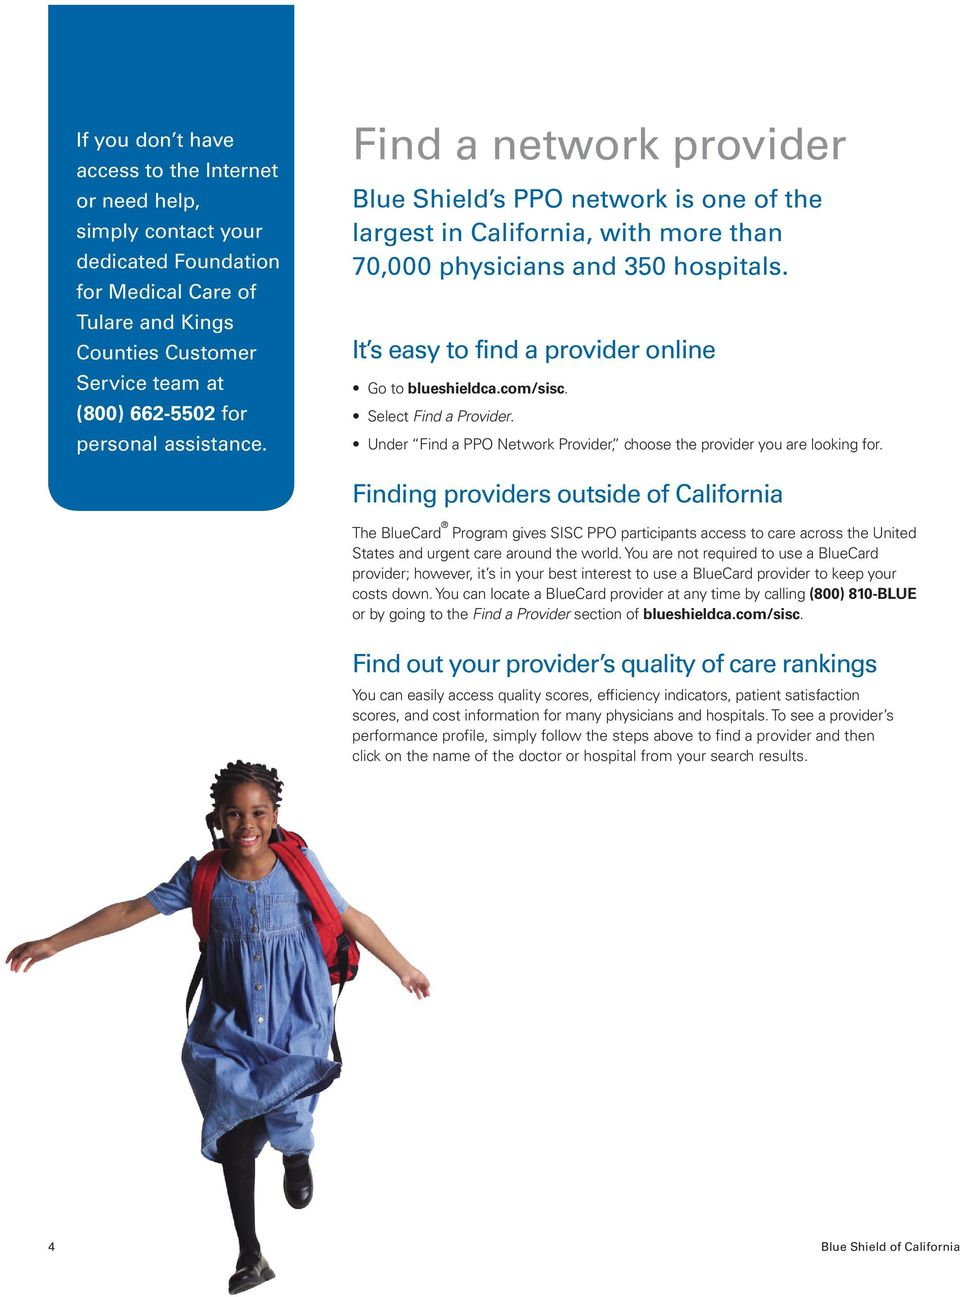 It s easy to find a provider online Go to blueshieldca.com/sisc. Select Find a Provider. Under Find a PPO Network Provider, choose the provider you are looking for.